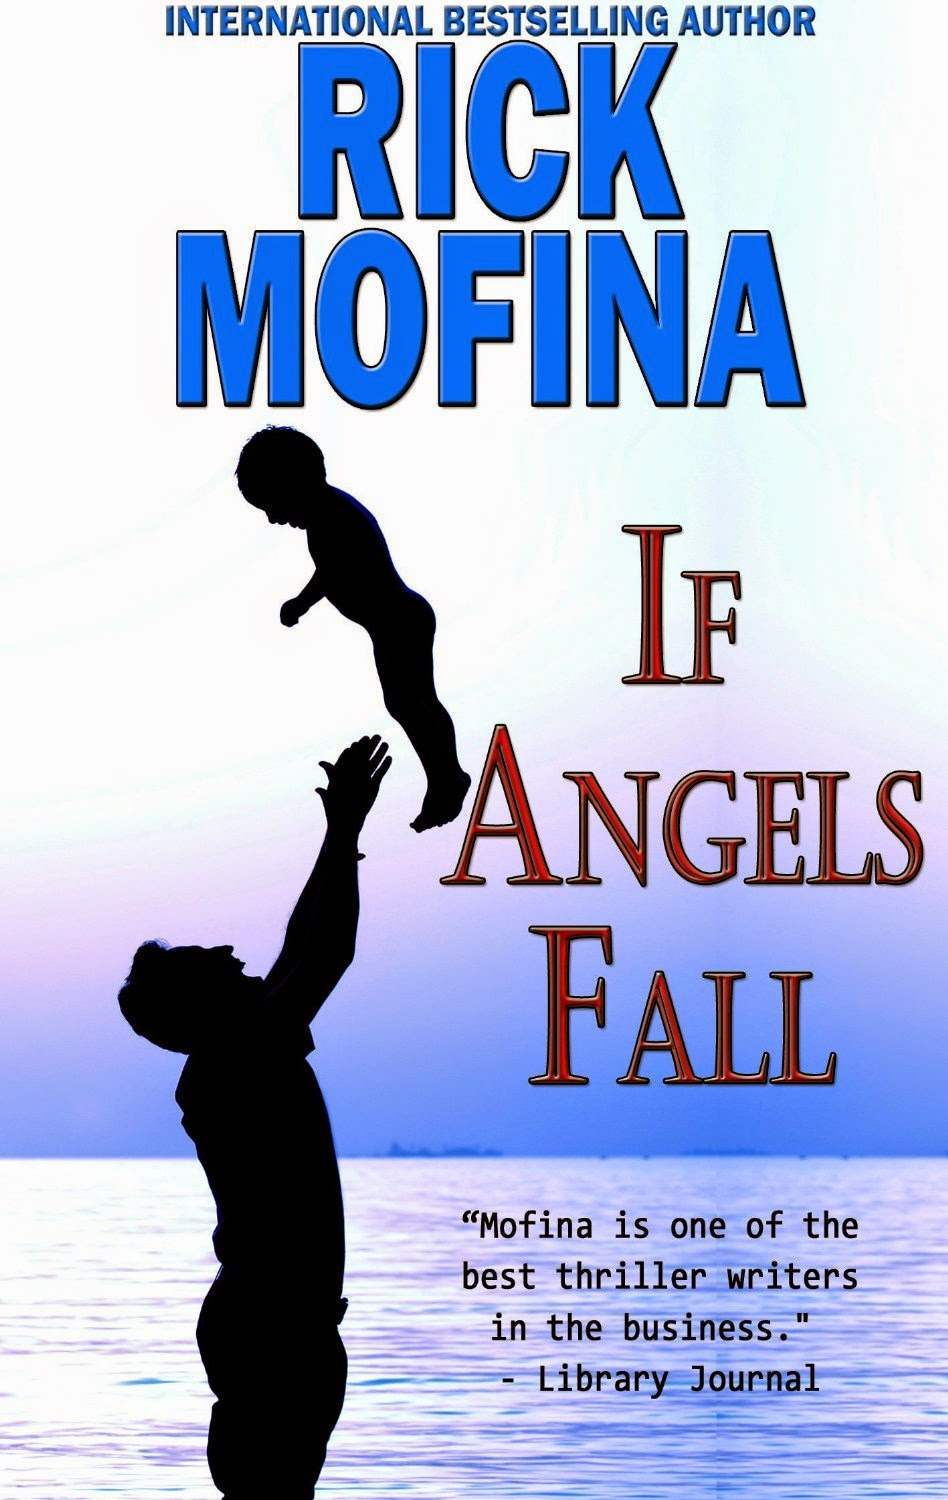 http://www.amazon.com/If-Angels-Fall-Rick-Mofina-ebook/dp/B00AL6X000/ref=sr_1_1?s=books&ie=UTF8&qid=1423324635&sr=1-1&keywords=if+angels+fall+rick+mofina